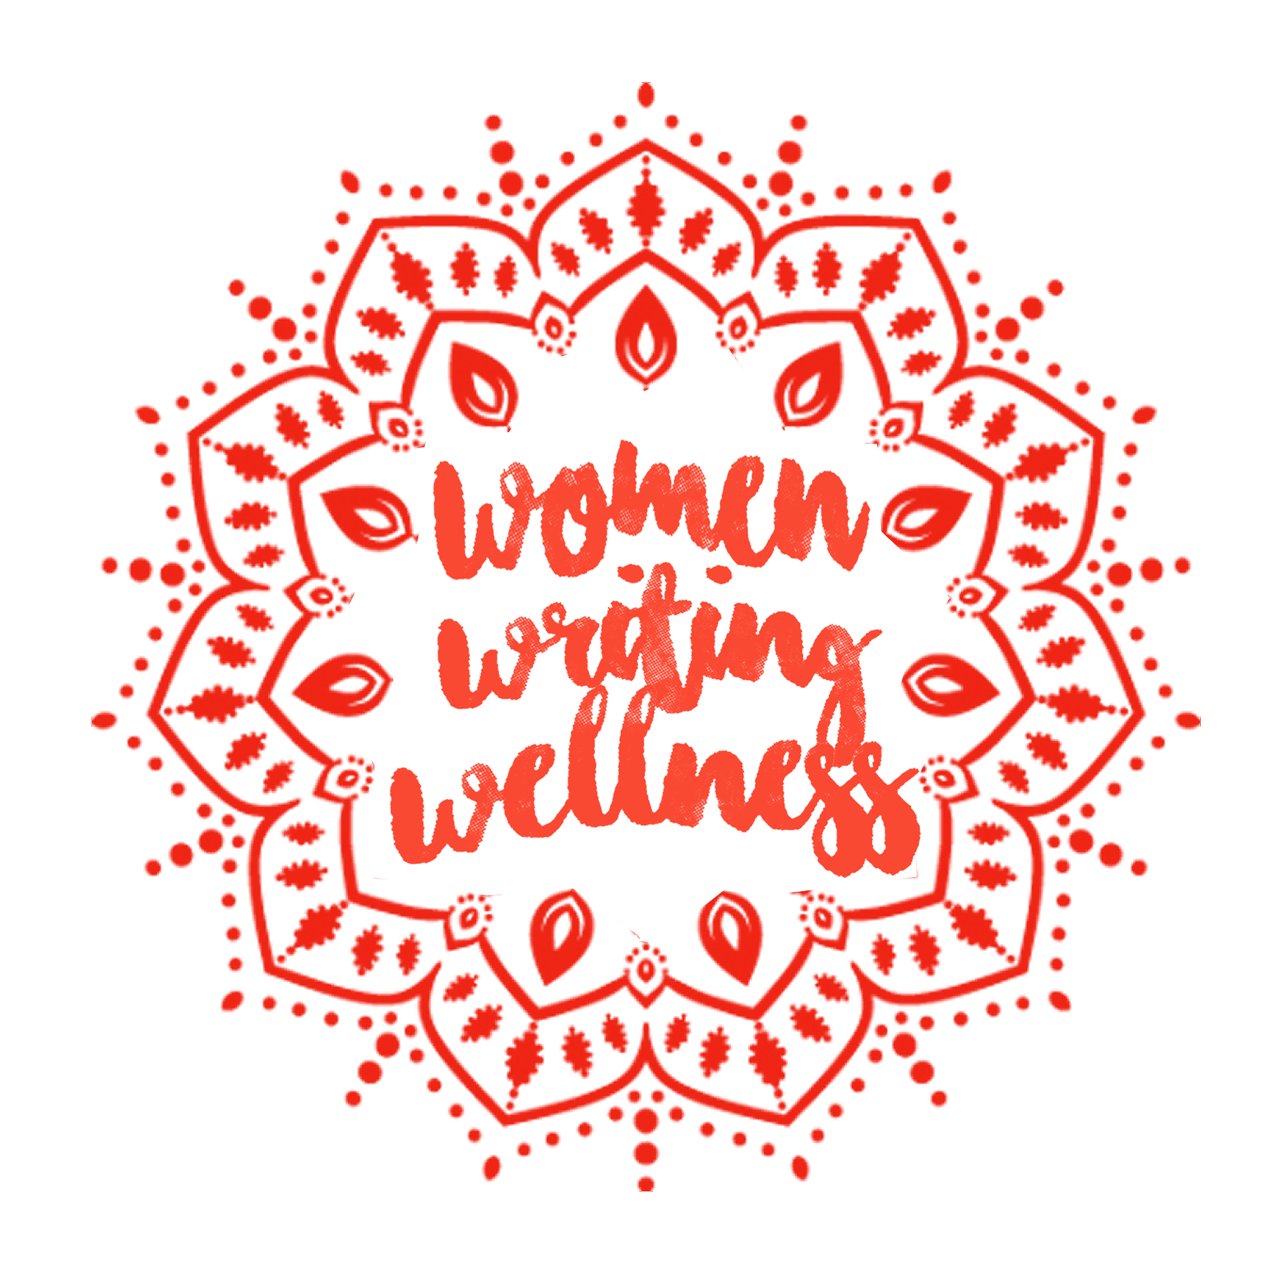 Women Writing Wellness